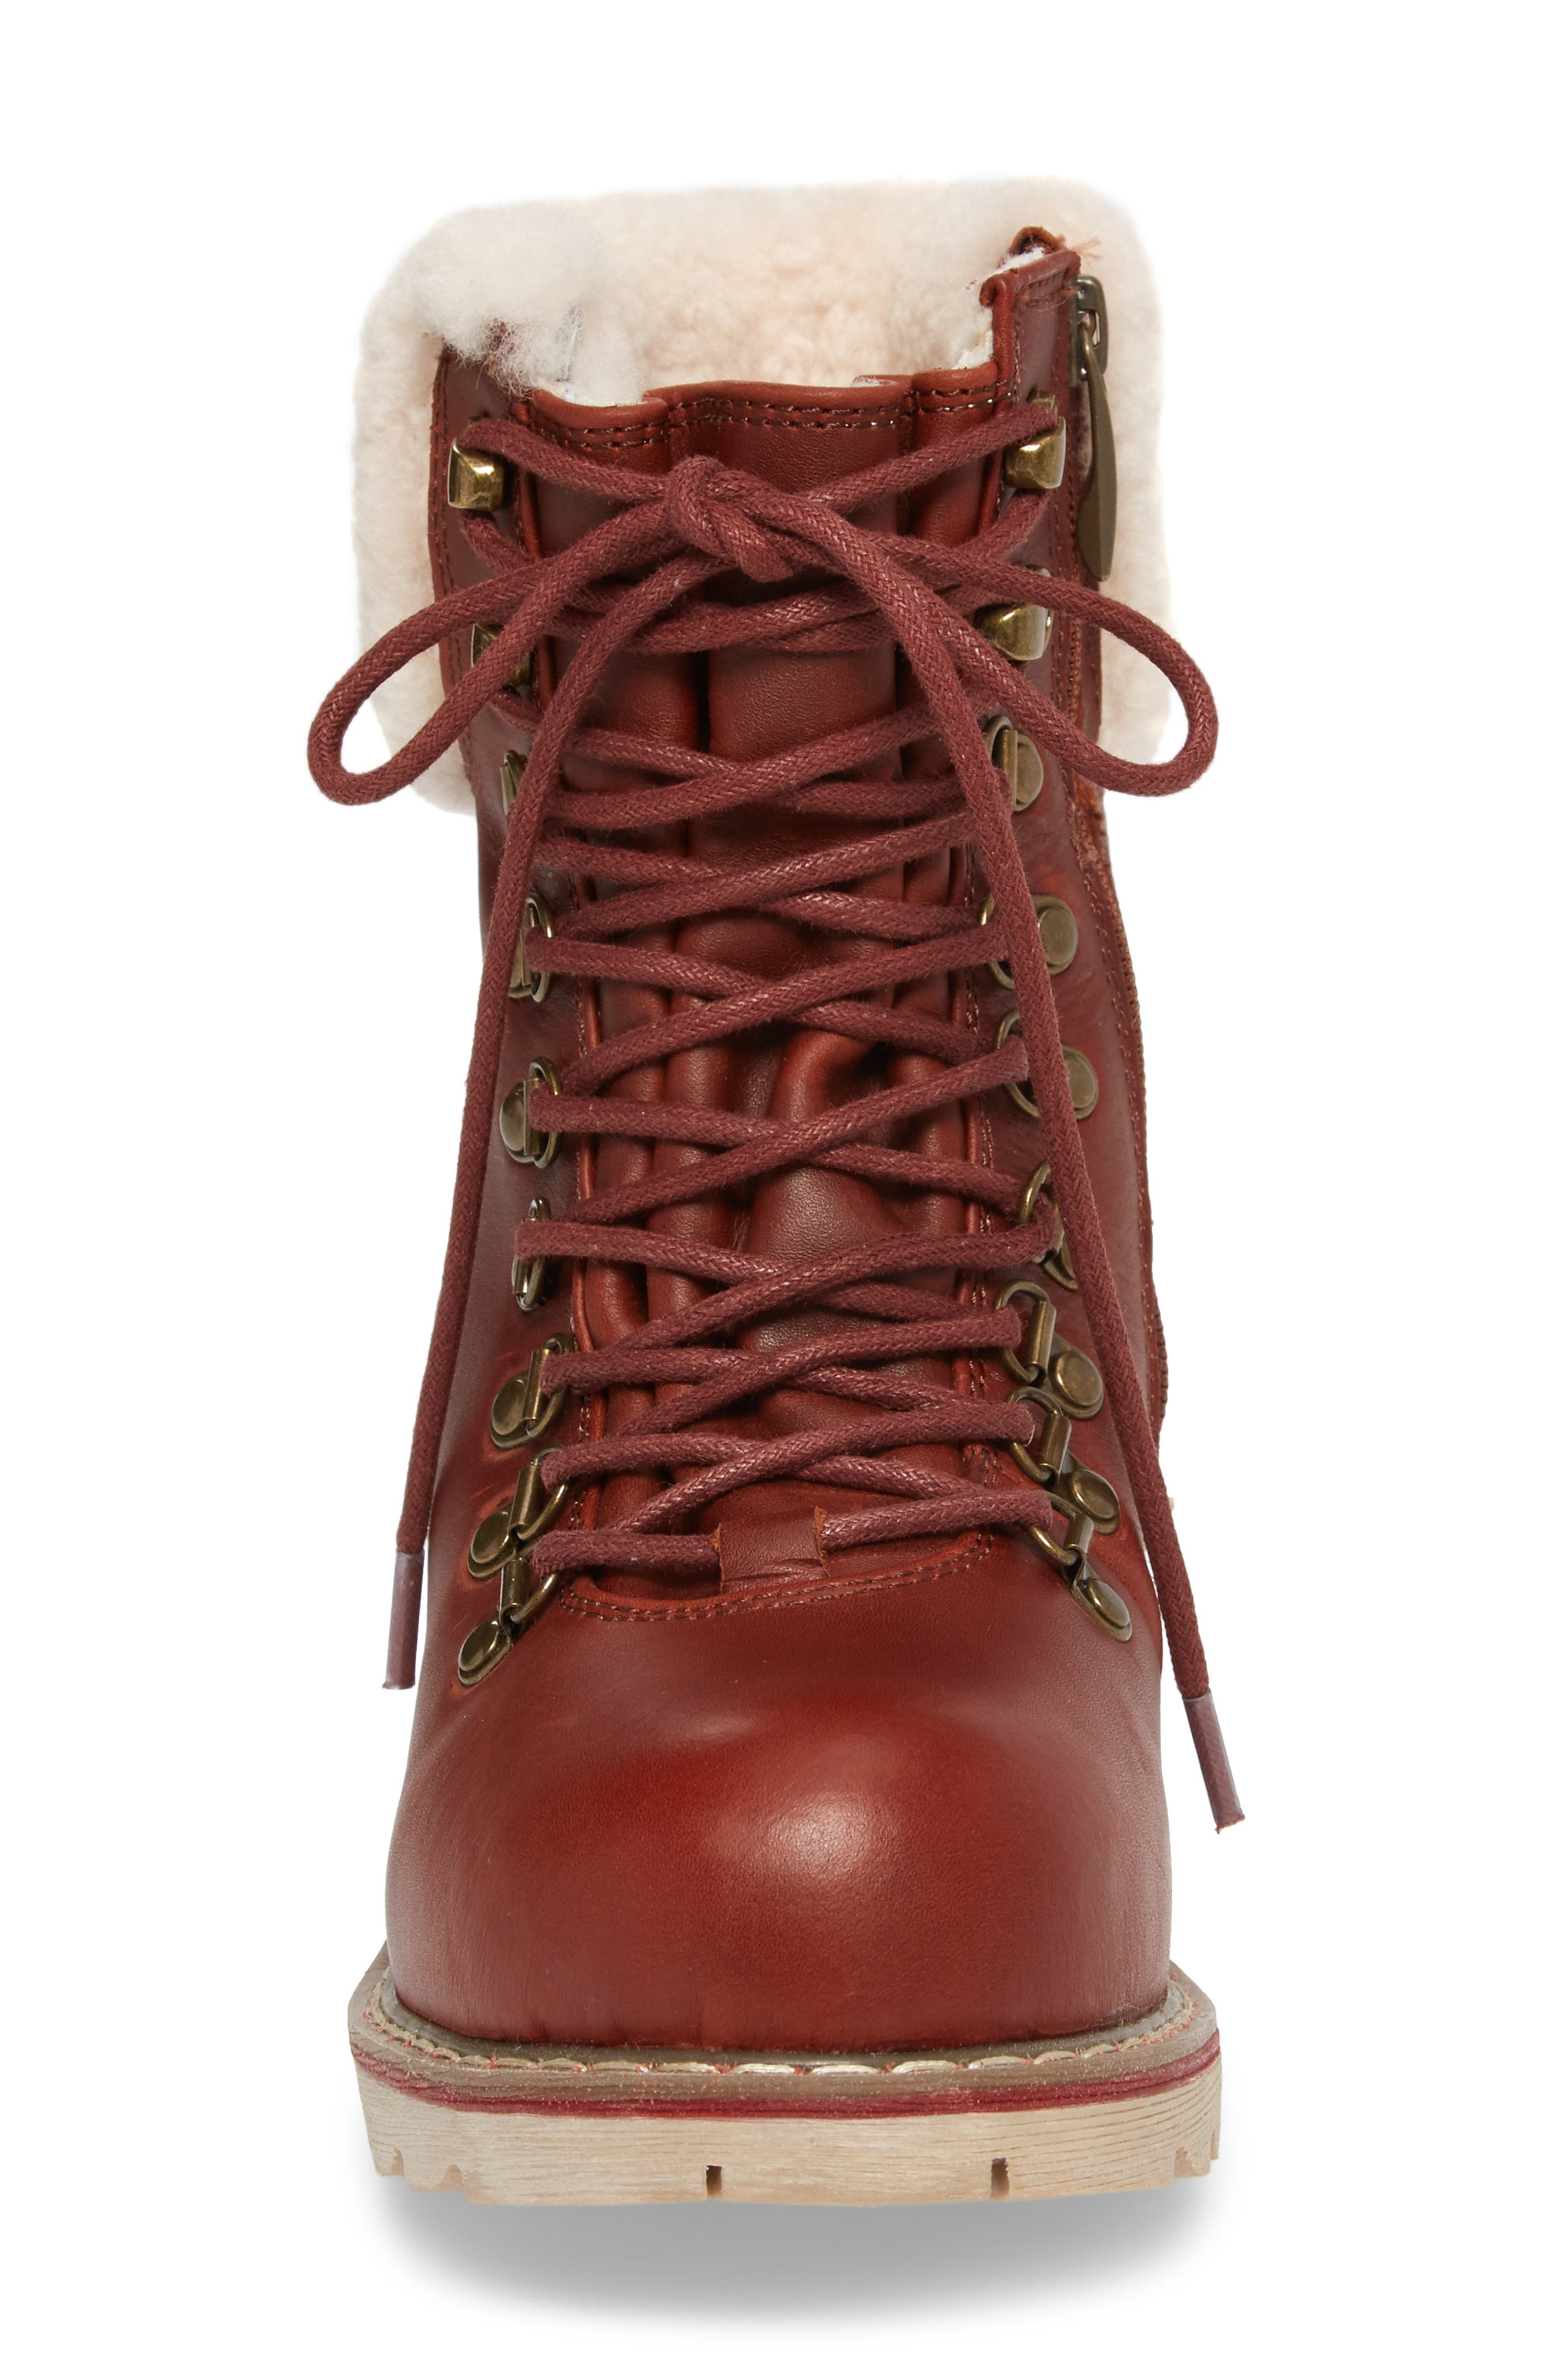 Lethbridge Waterproof Snow Boot with Genuine Shearling Cuff,                             Alternate thumbnail 15, color,